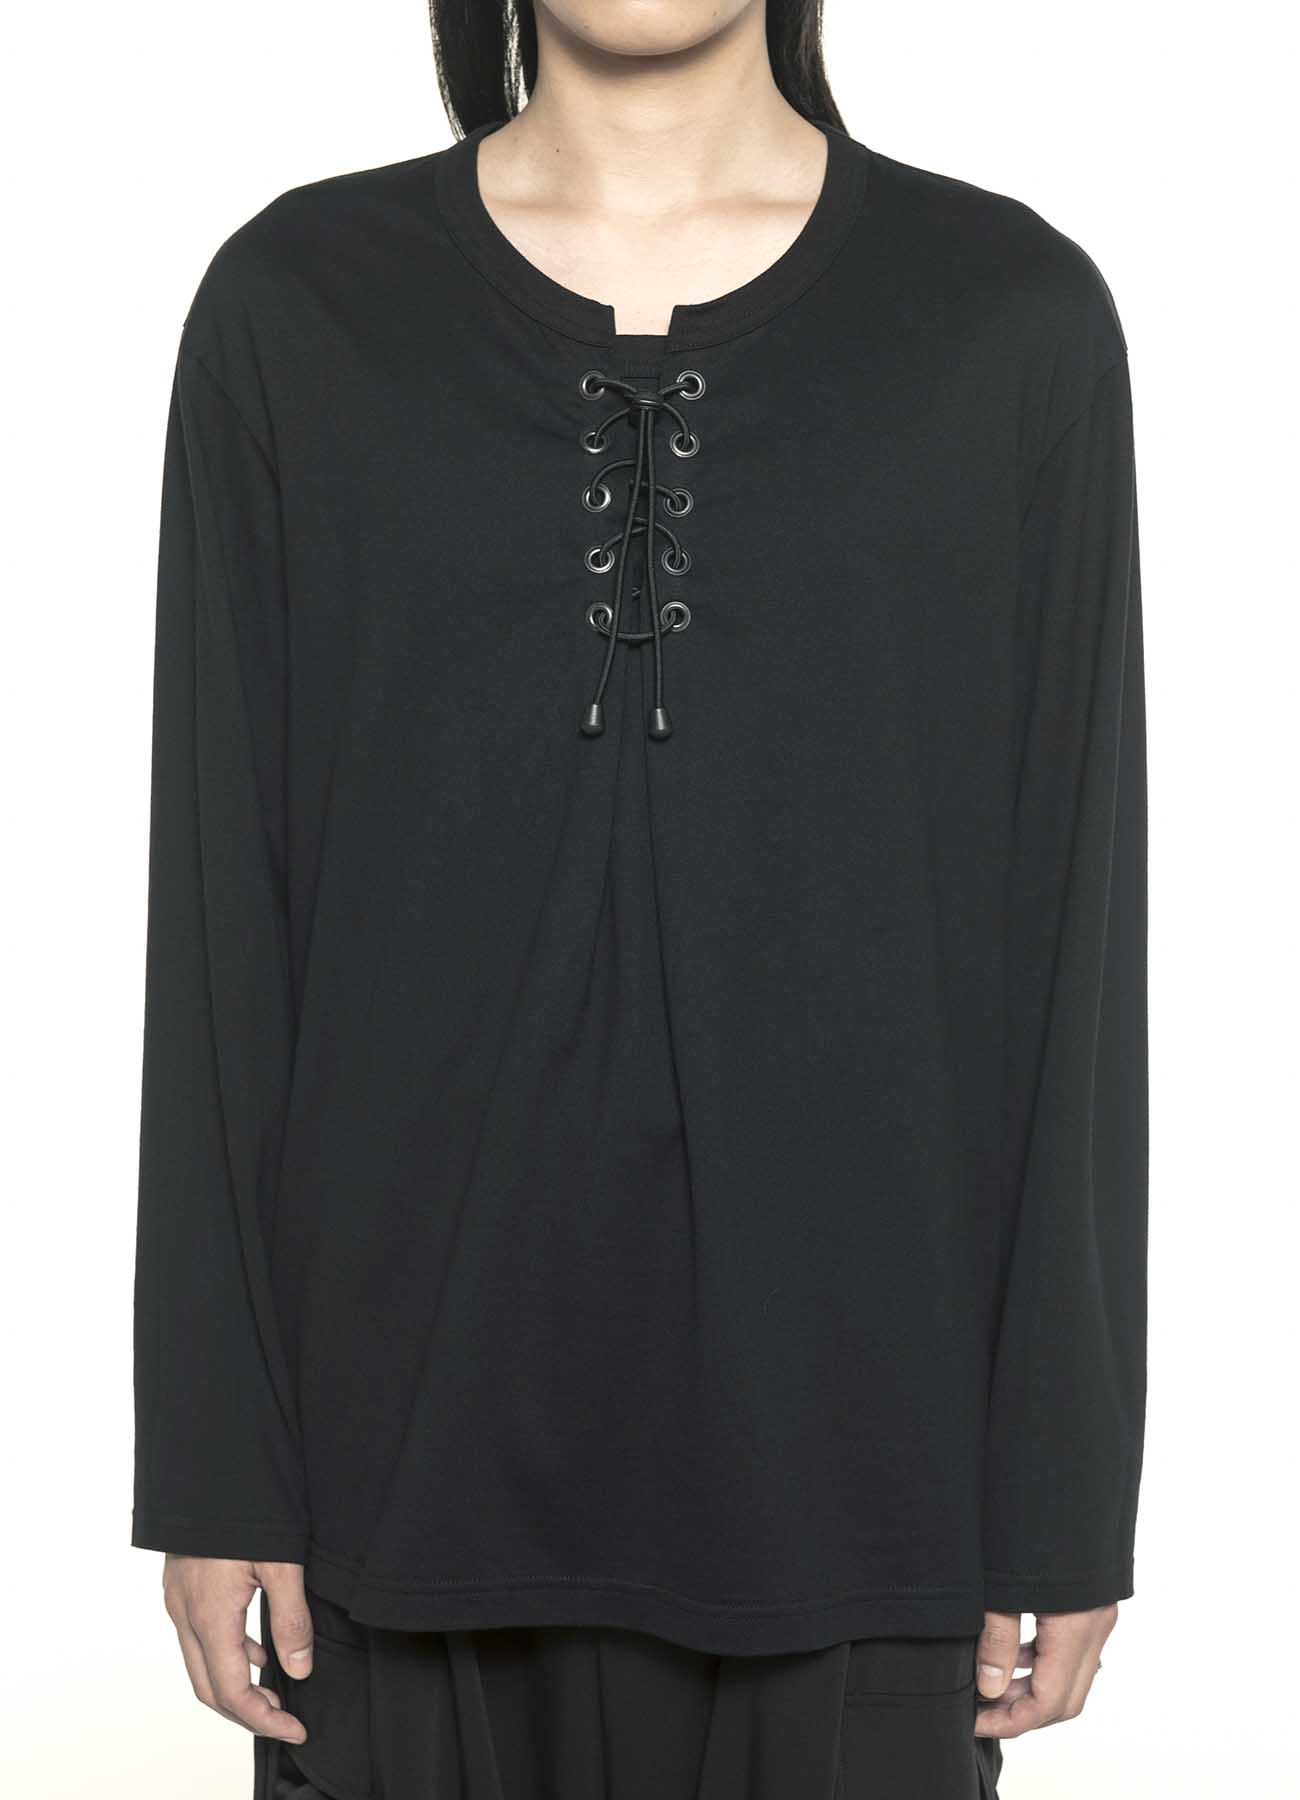 40/2 Cotton Jersey Lace-up Pullover Long Sleeve T